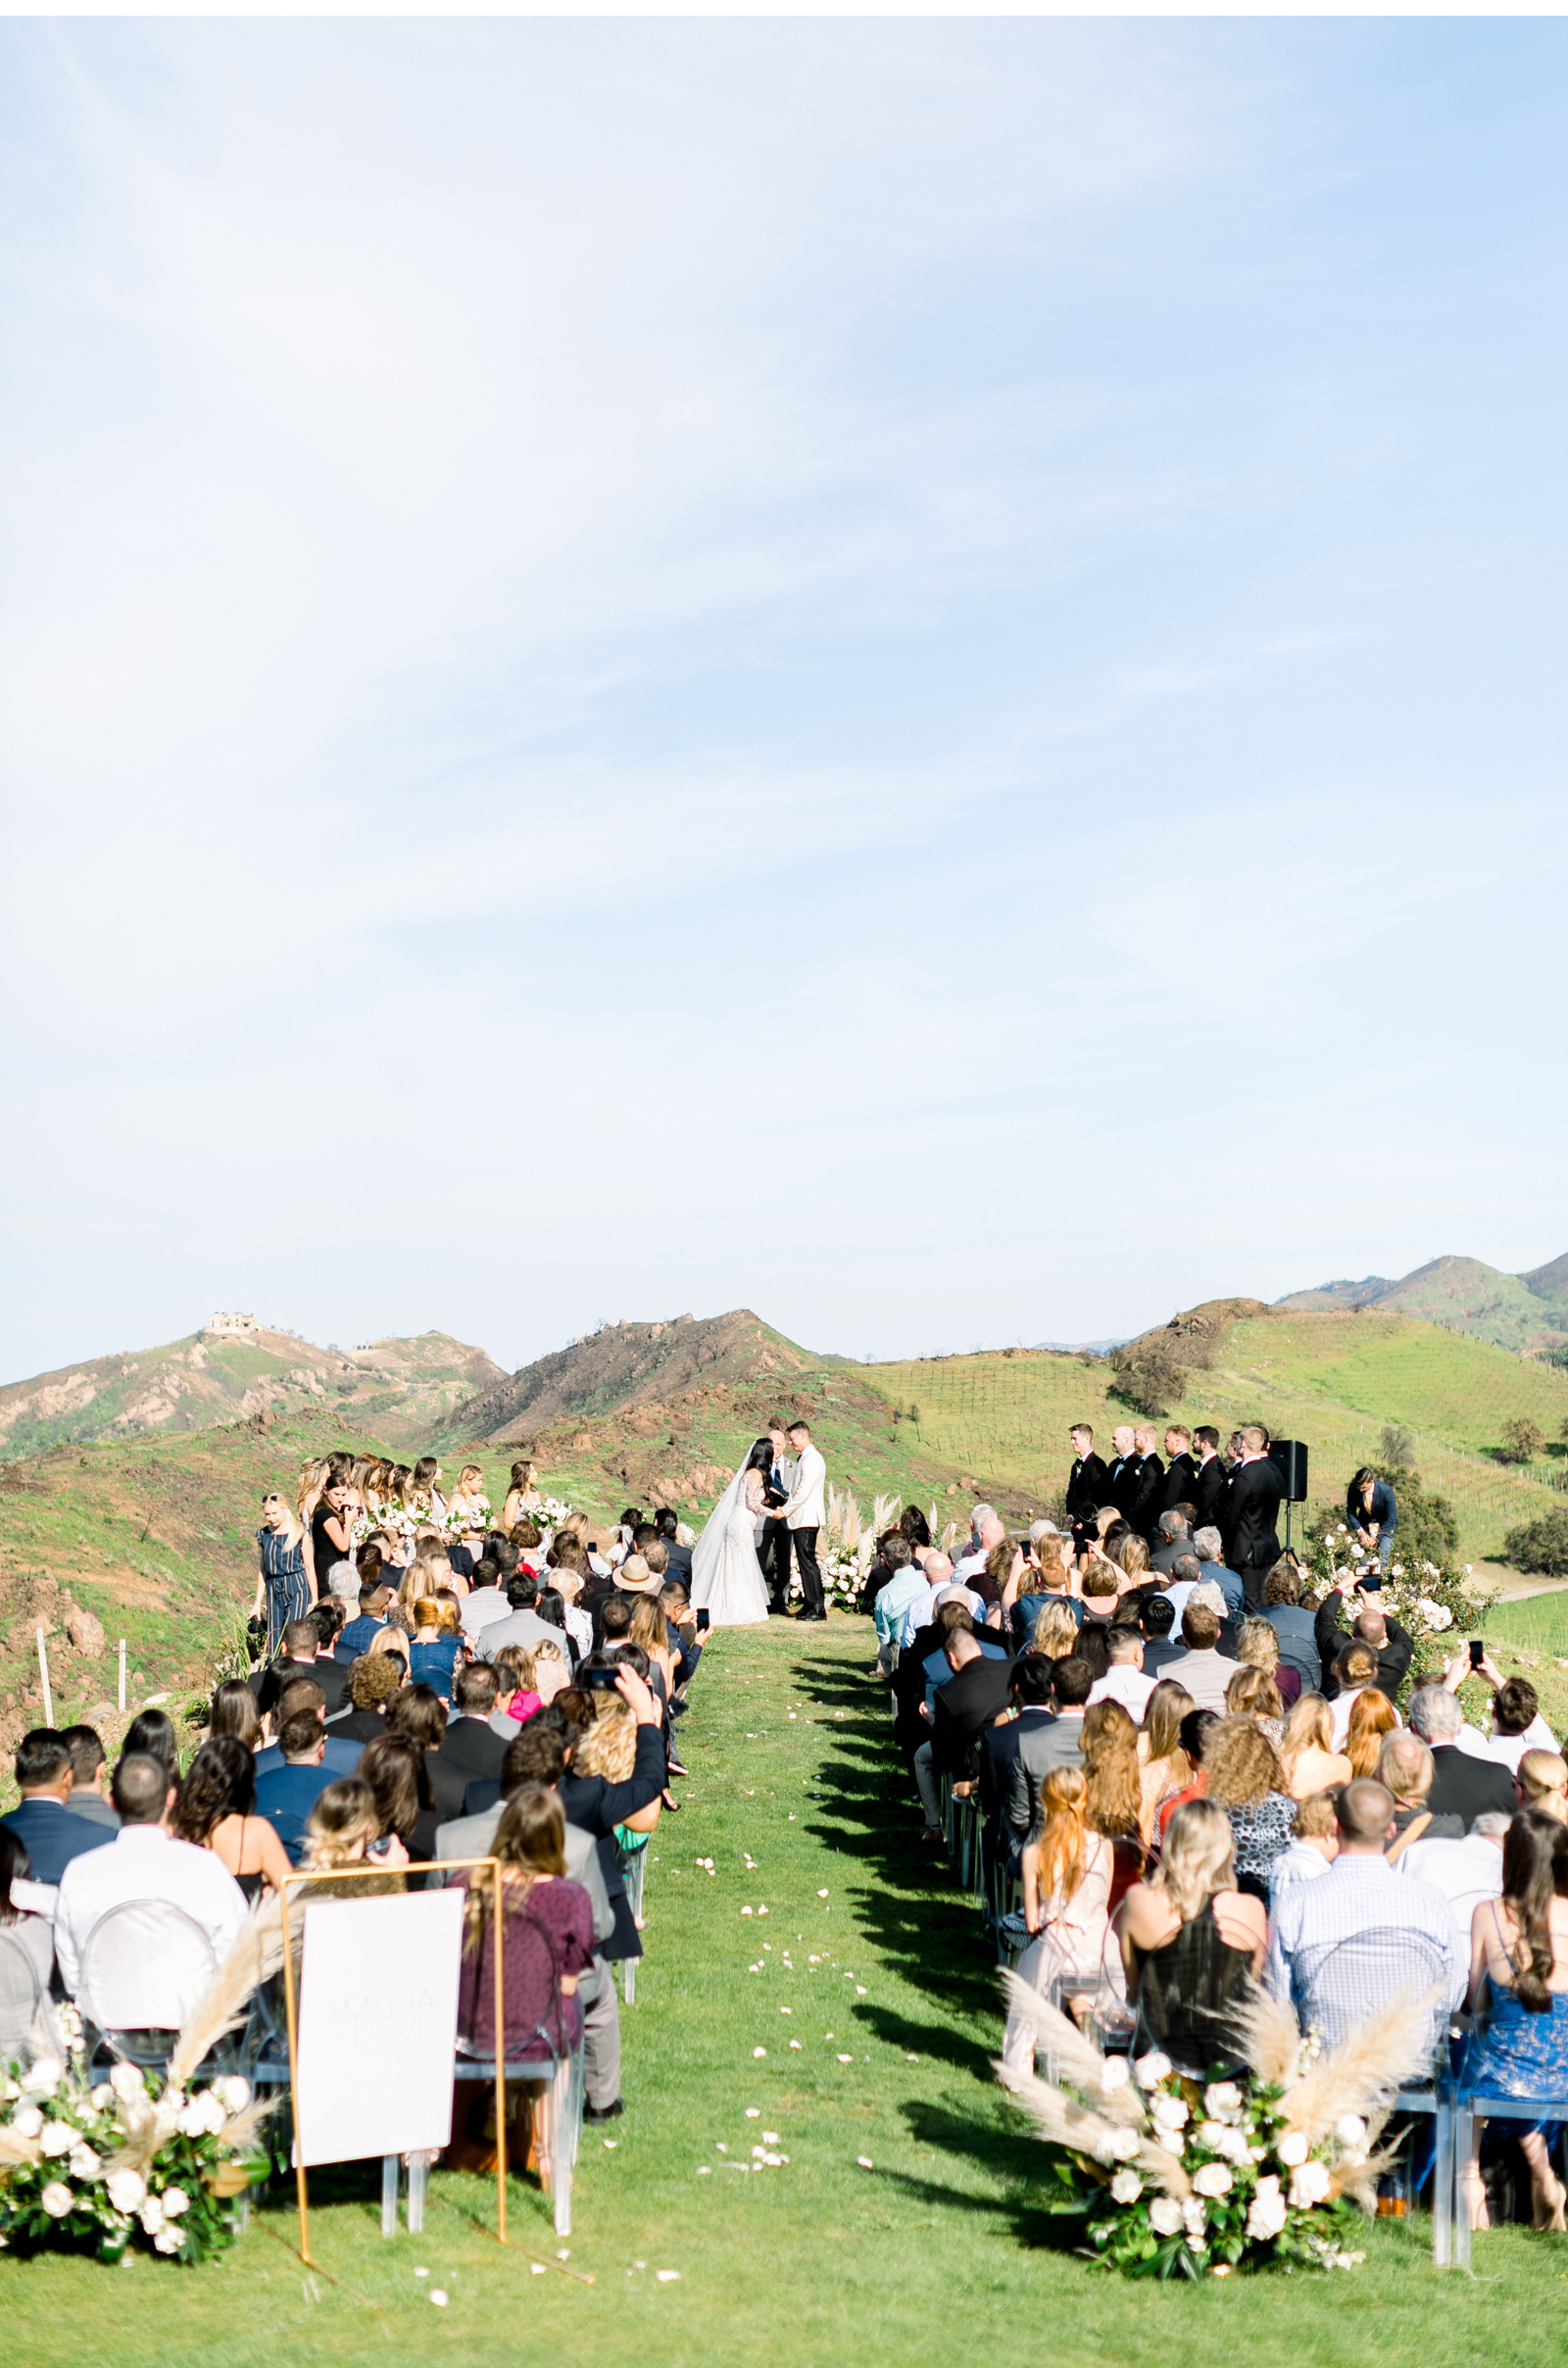 Style-Me-Pretty-Malibu-Wedding-Photogrpaher-Southern-California-Wedding-Photographer-Natalie-Schutt-Photography-_13.jpg